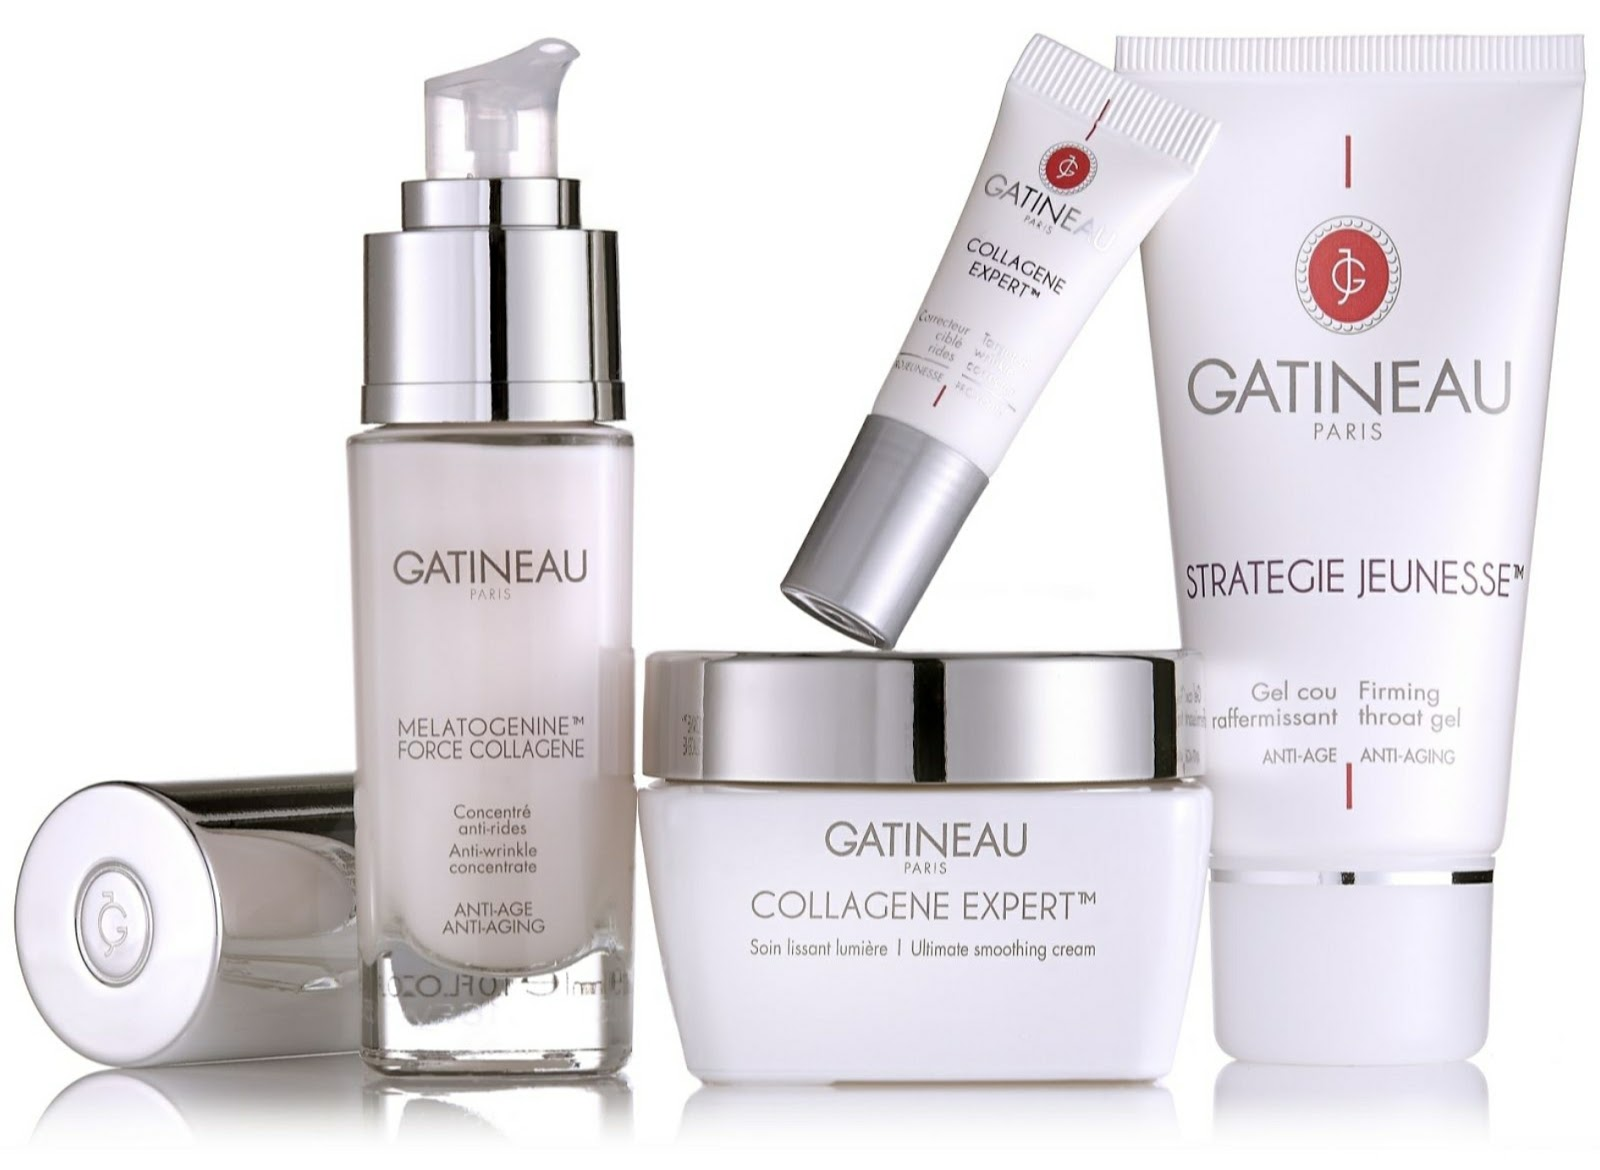 Gatineau 4 Step Ultimate Smoothing Skincare Collection